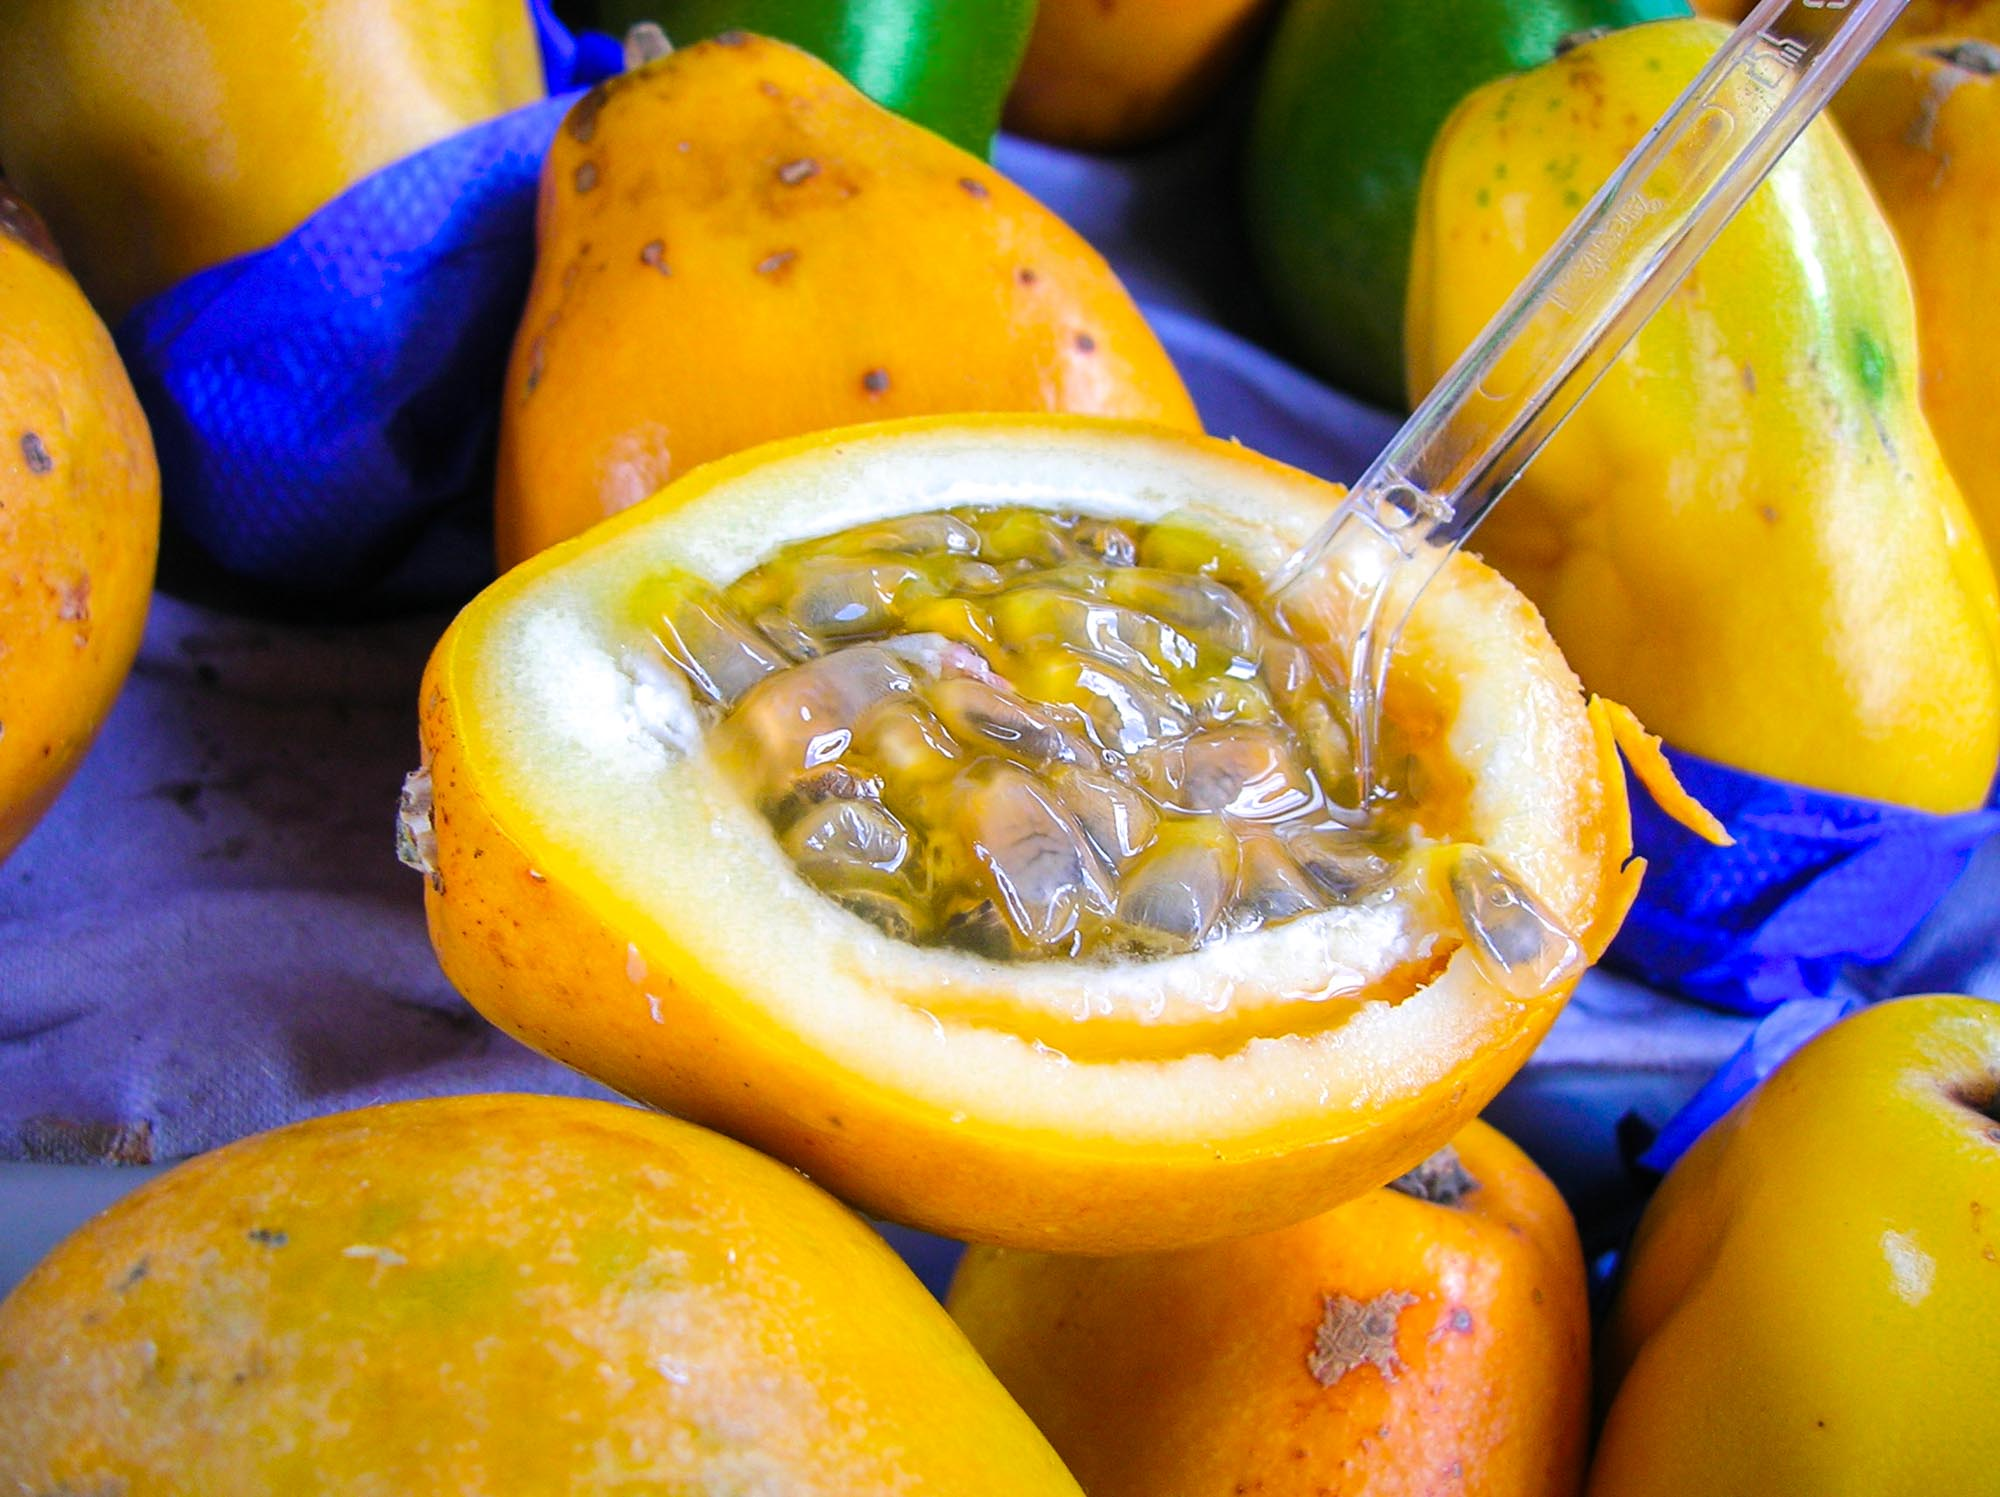 Passionfruit is one of the most common exotic fruits in the world. Originating in South East Asia you can now find it in Central and South America.